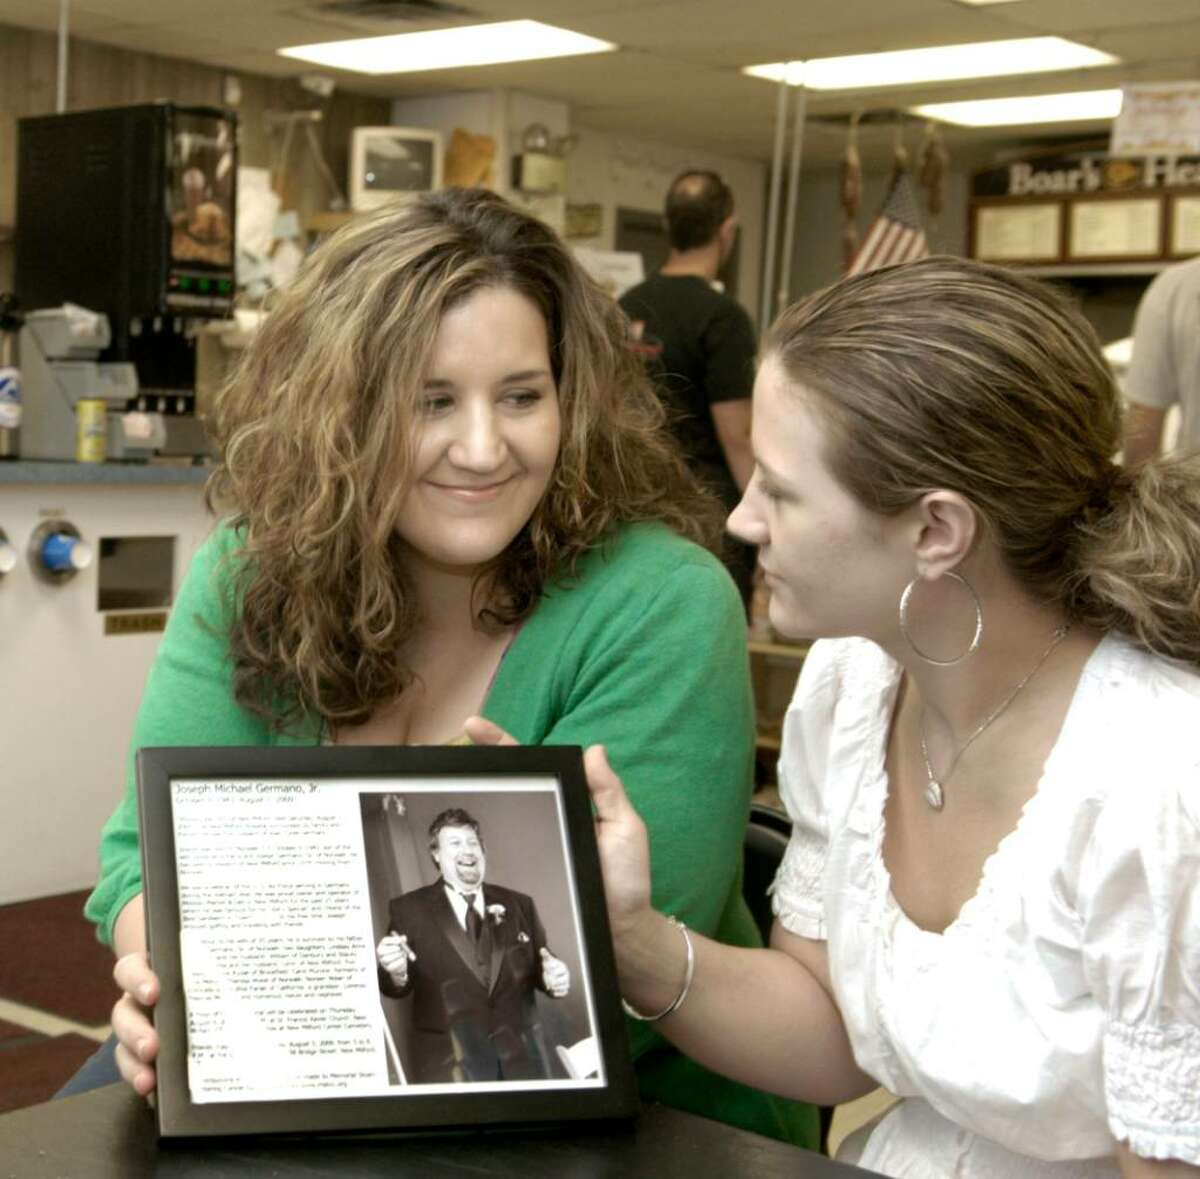 Sisters Lindsay Matthews, 32, of Danbury,left and Stacey Moronta,31 of New Milford, remember their father Joe Germano, long-time owner of the Midway Market in New Milford. Joe died this past weekend after a month-long battle with cancer. Photo taken August 3, 2009 by Carol Kaliff